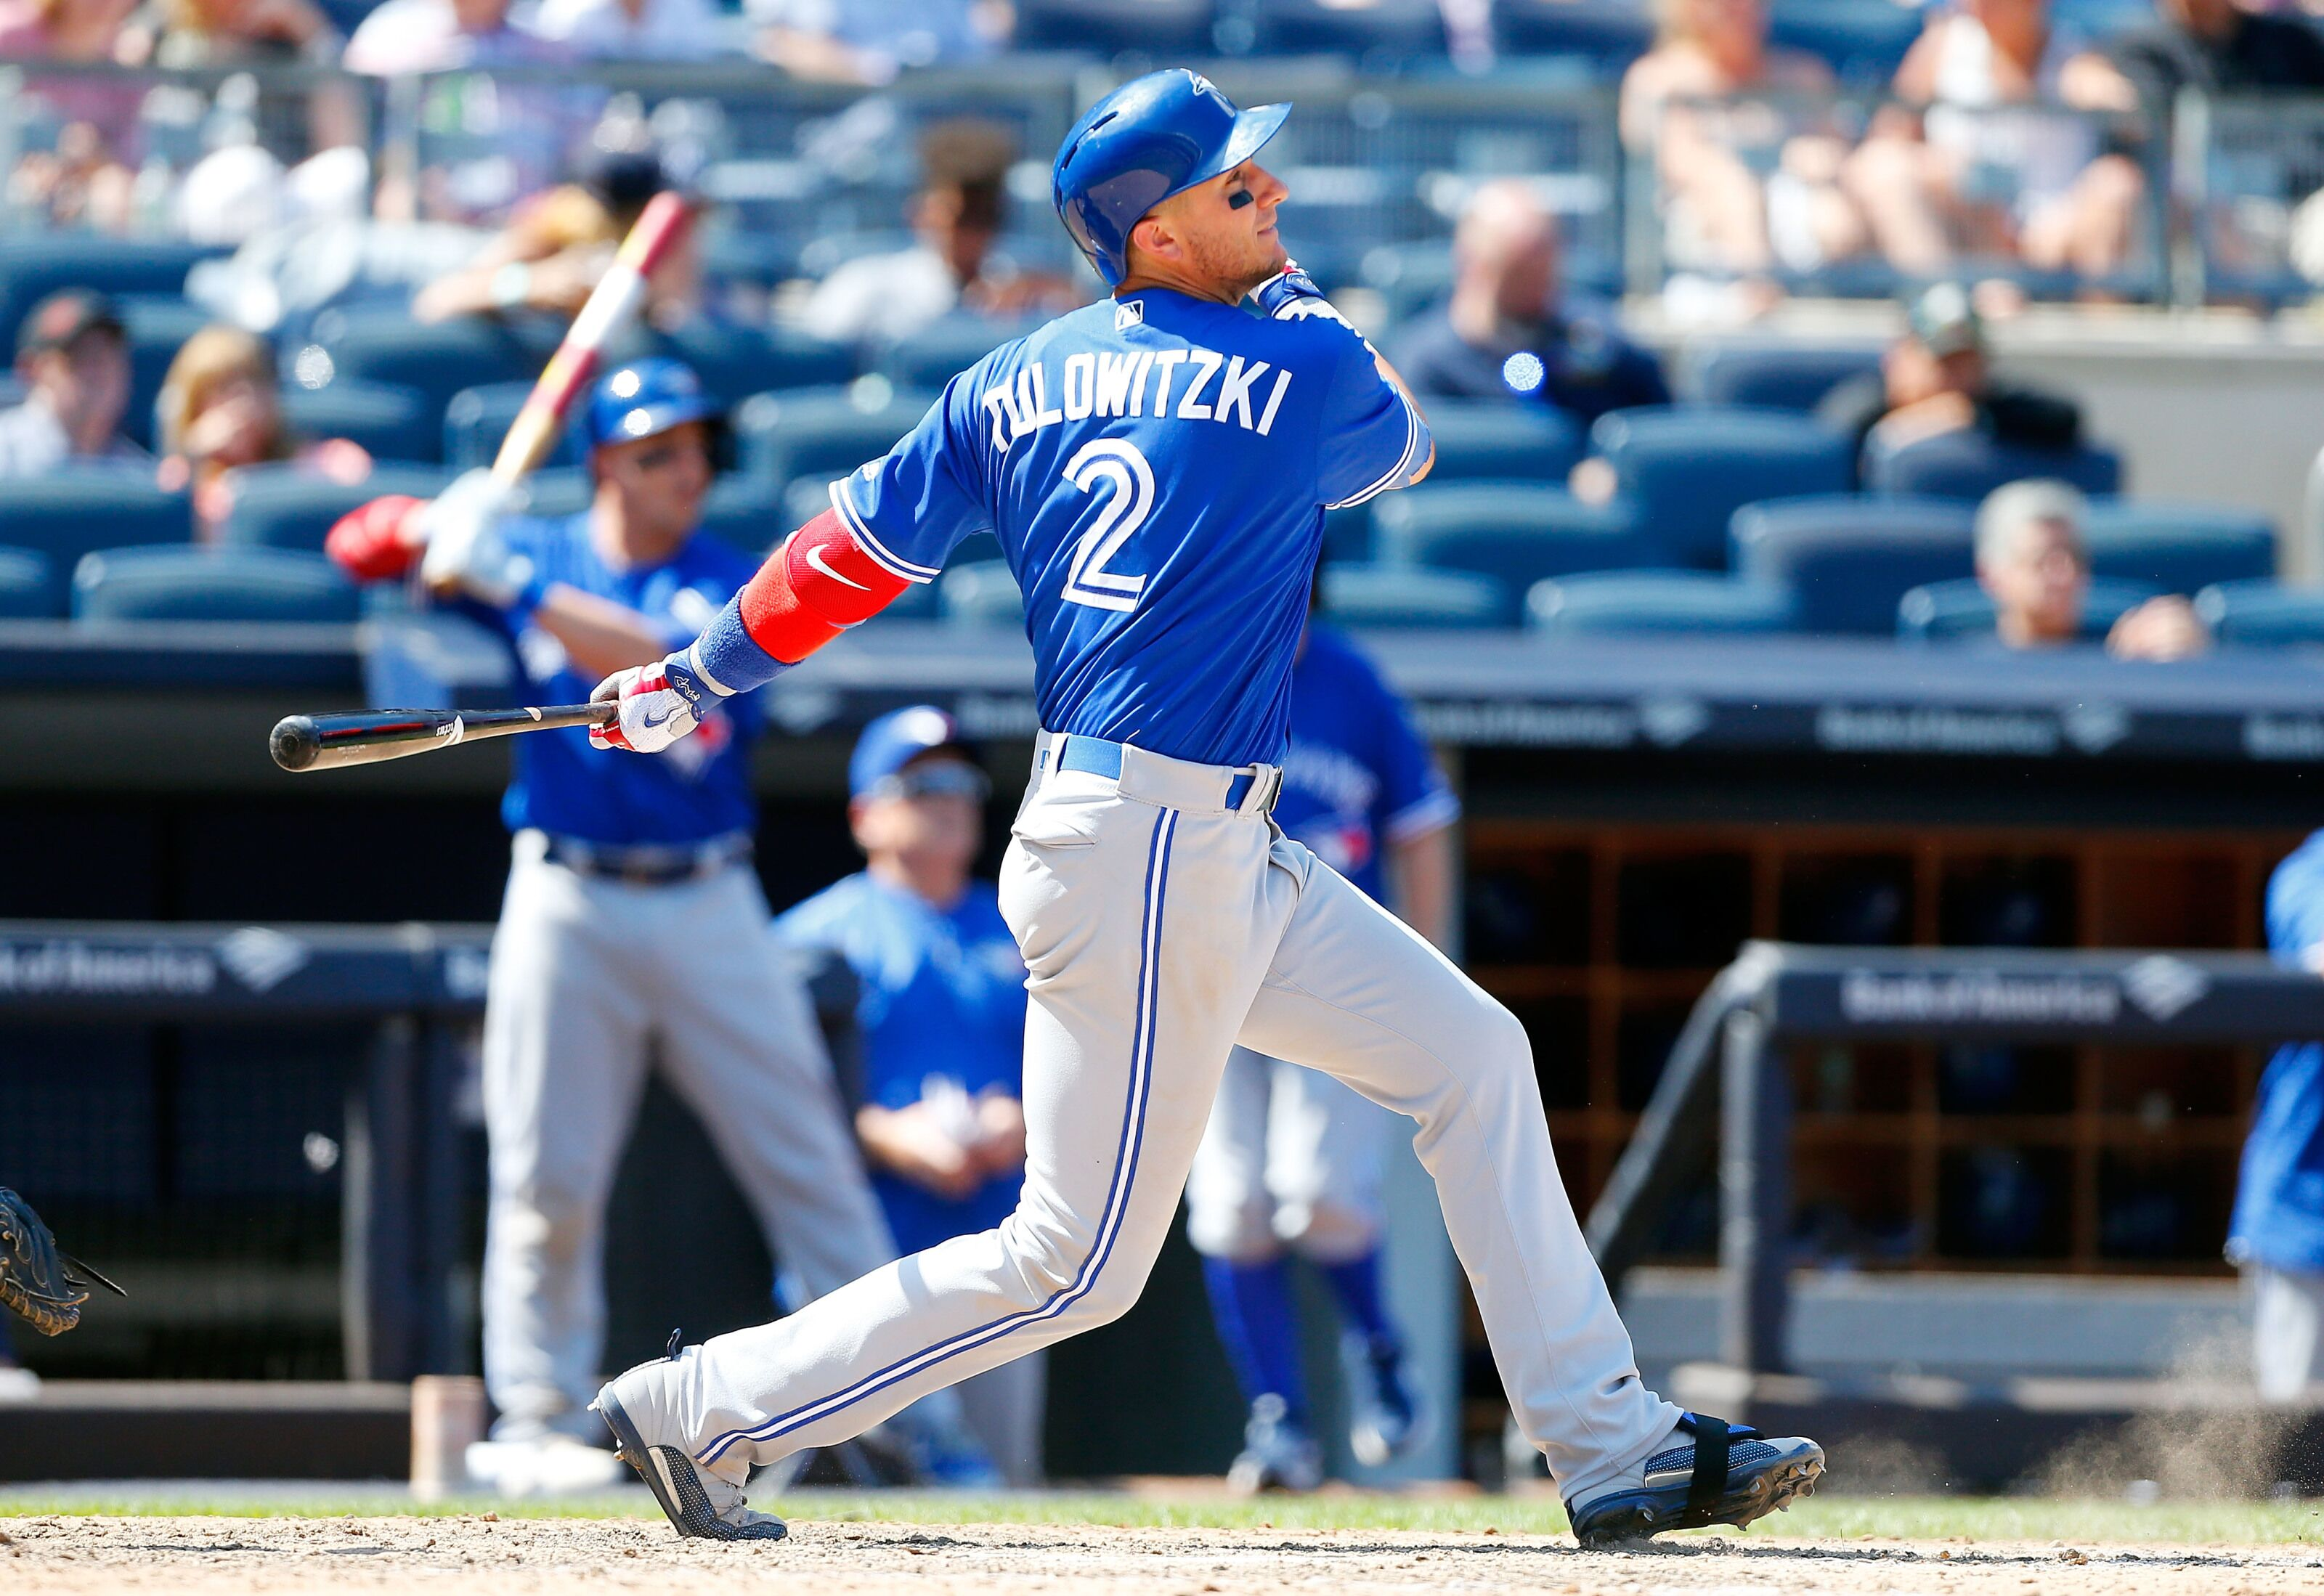 New York Yankees: What is Troy Tulowitzki's role this season?